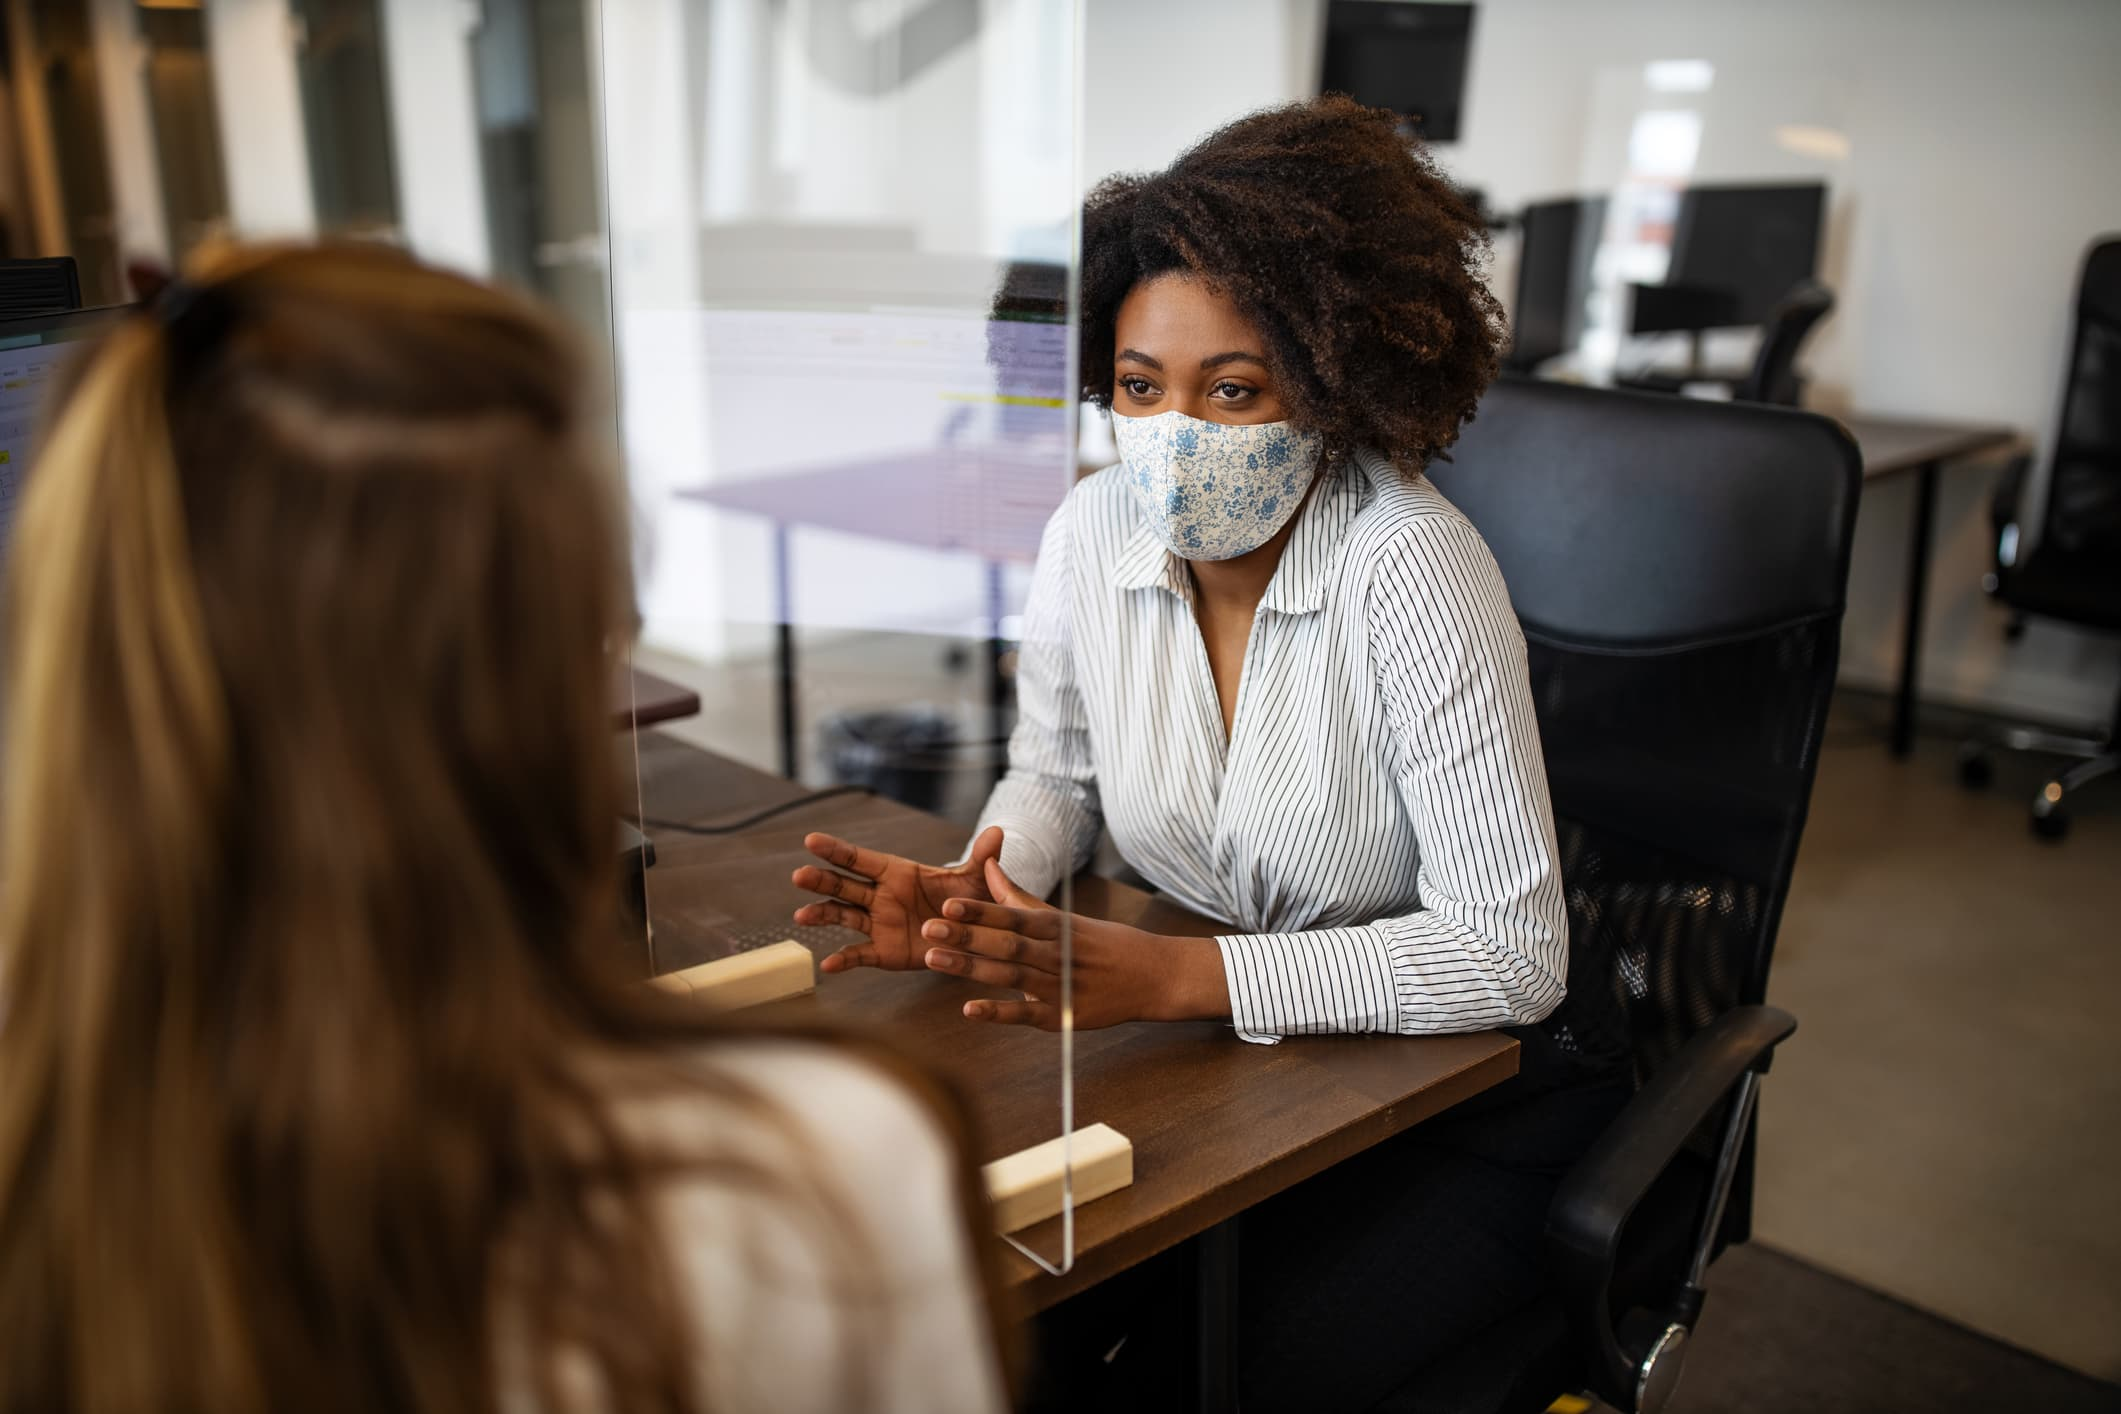 Advisors are changing how they communicate with clients due to pandemic. Here's what to expect